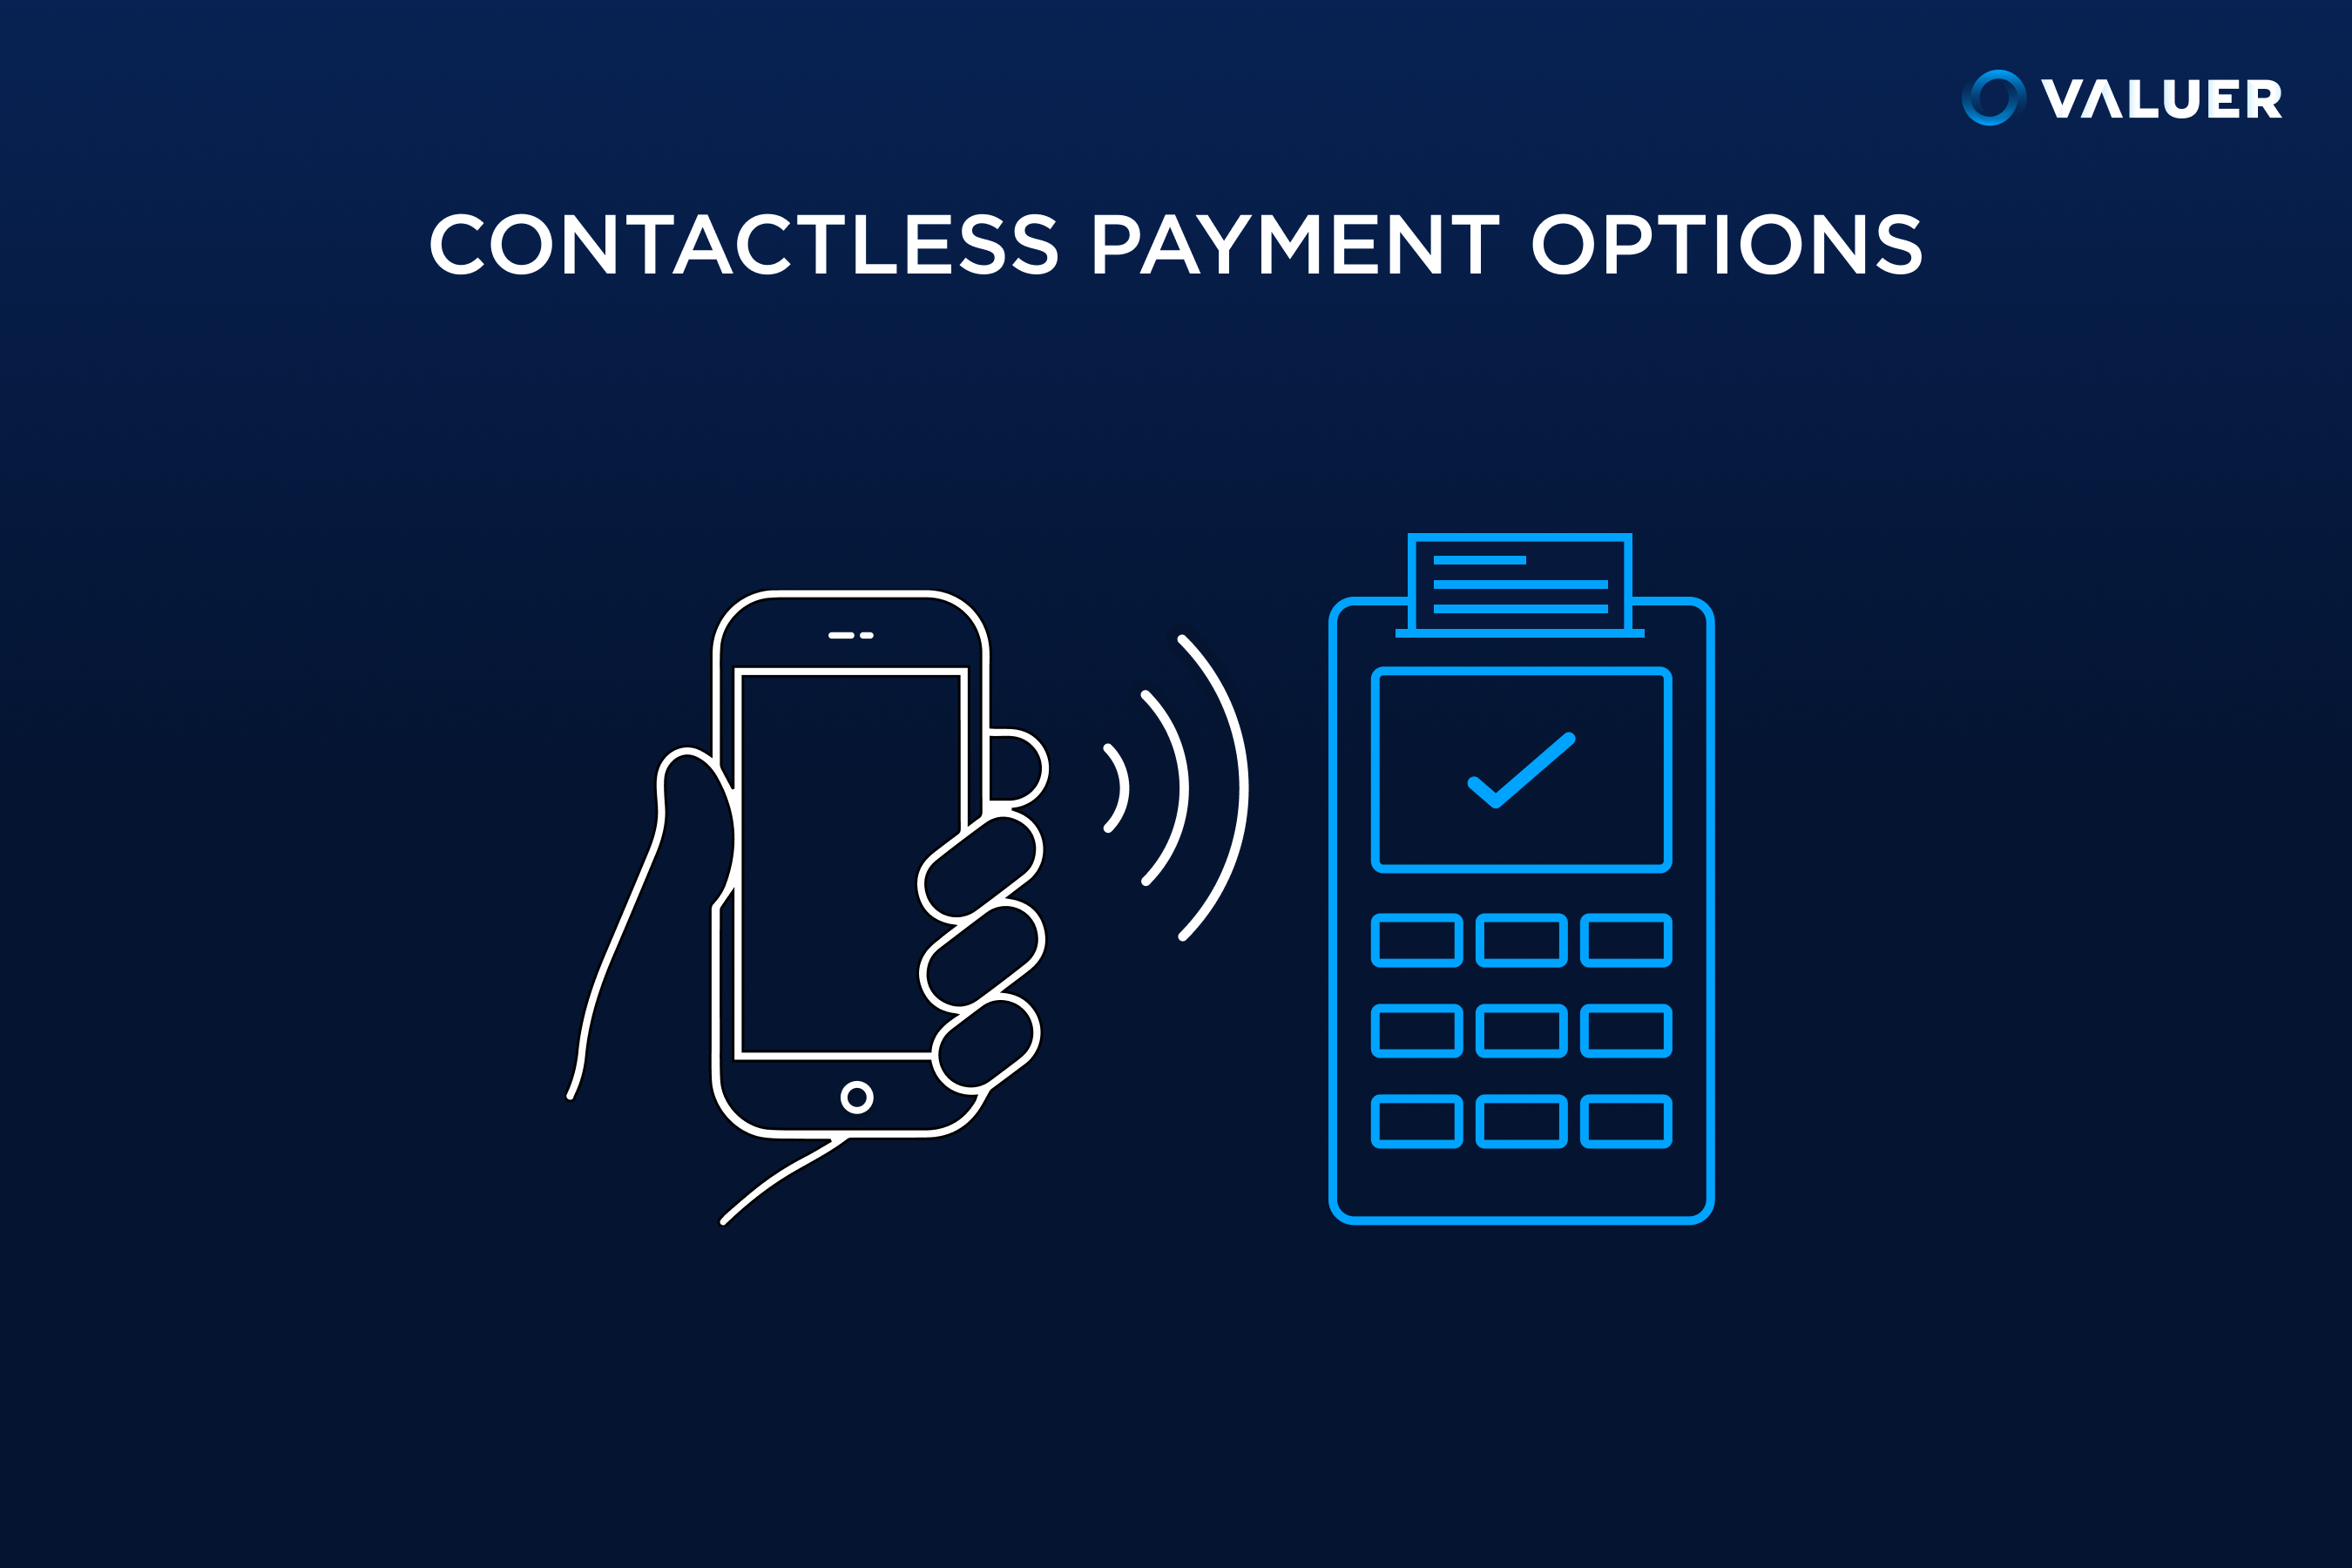 contactless payment options with an image of a phone and contactless payment reader